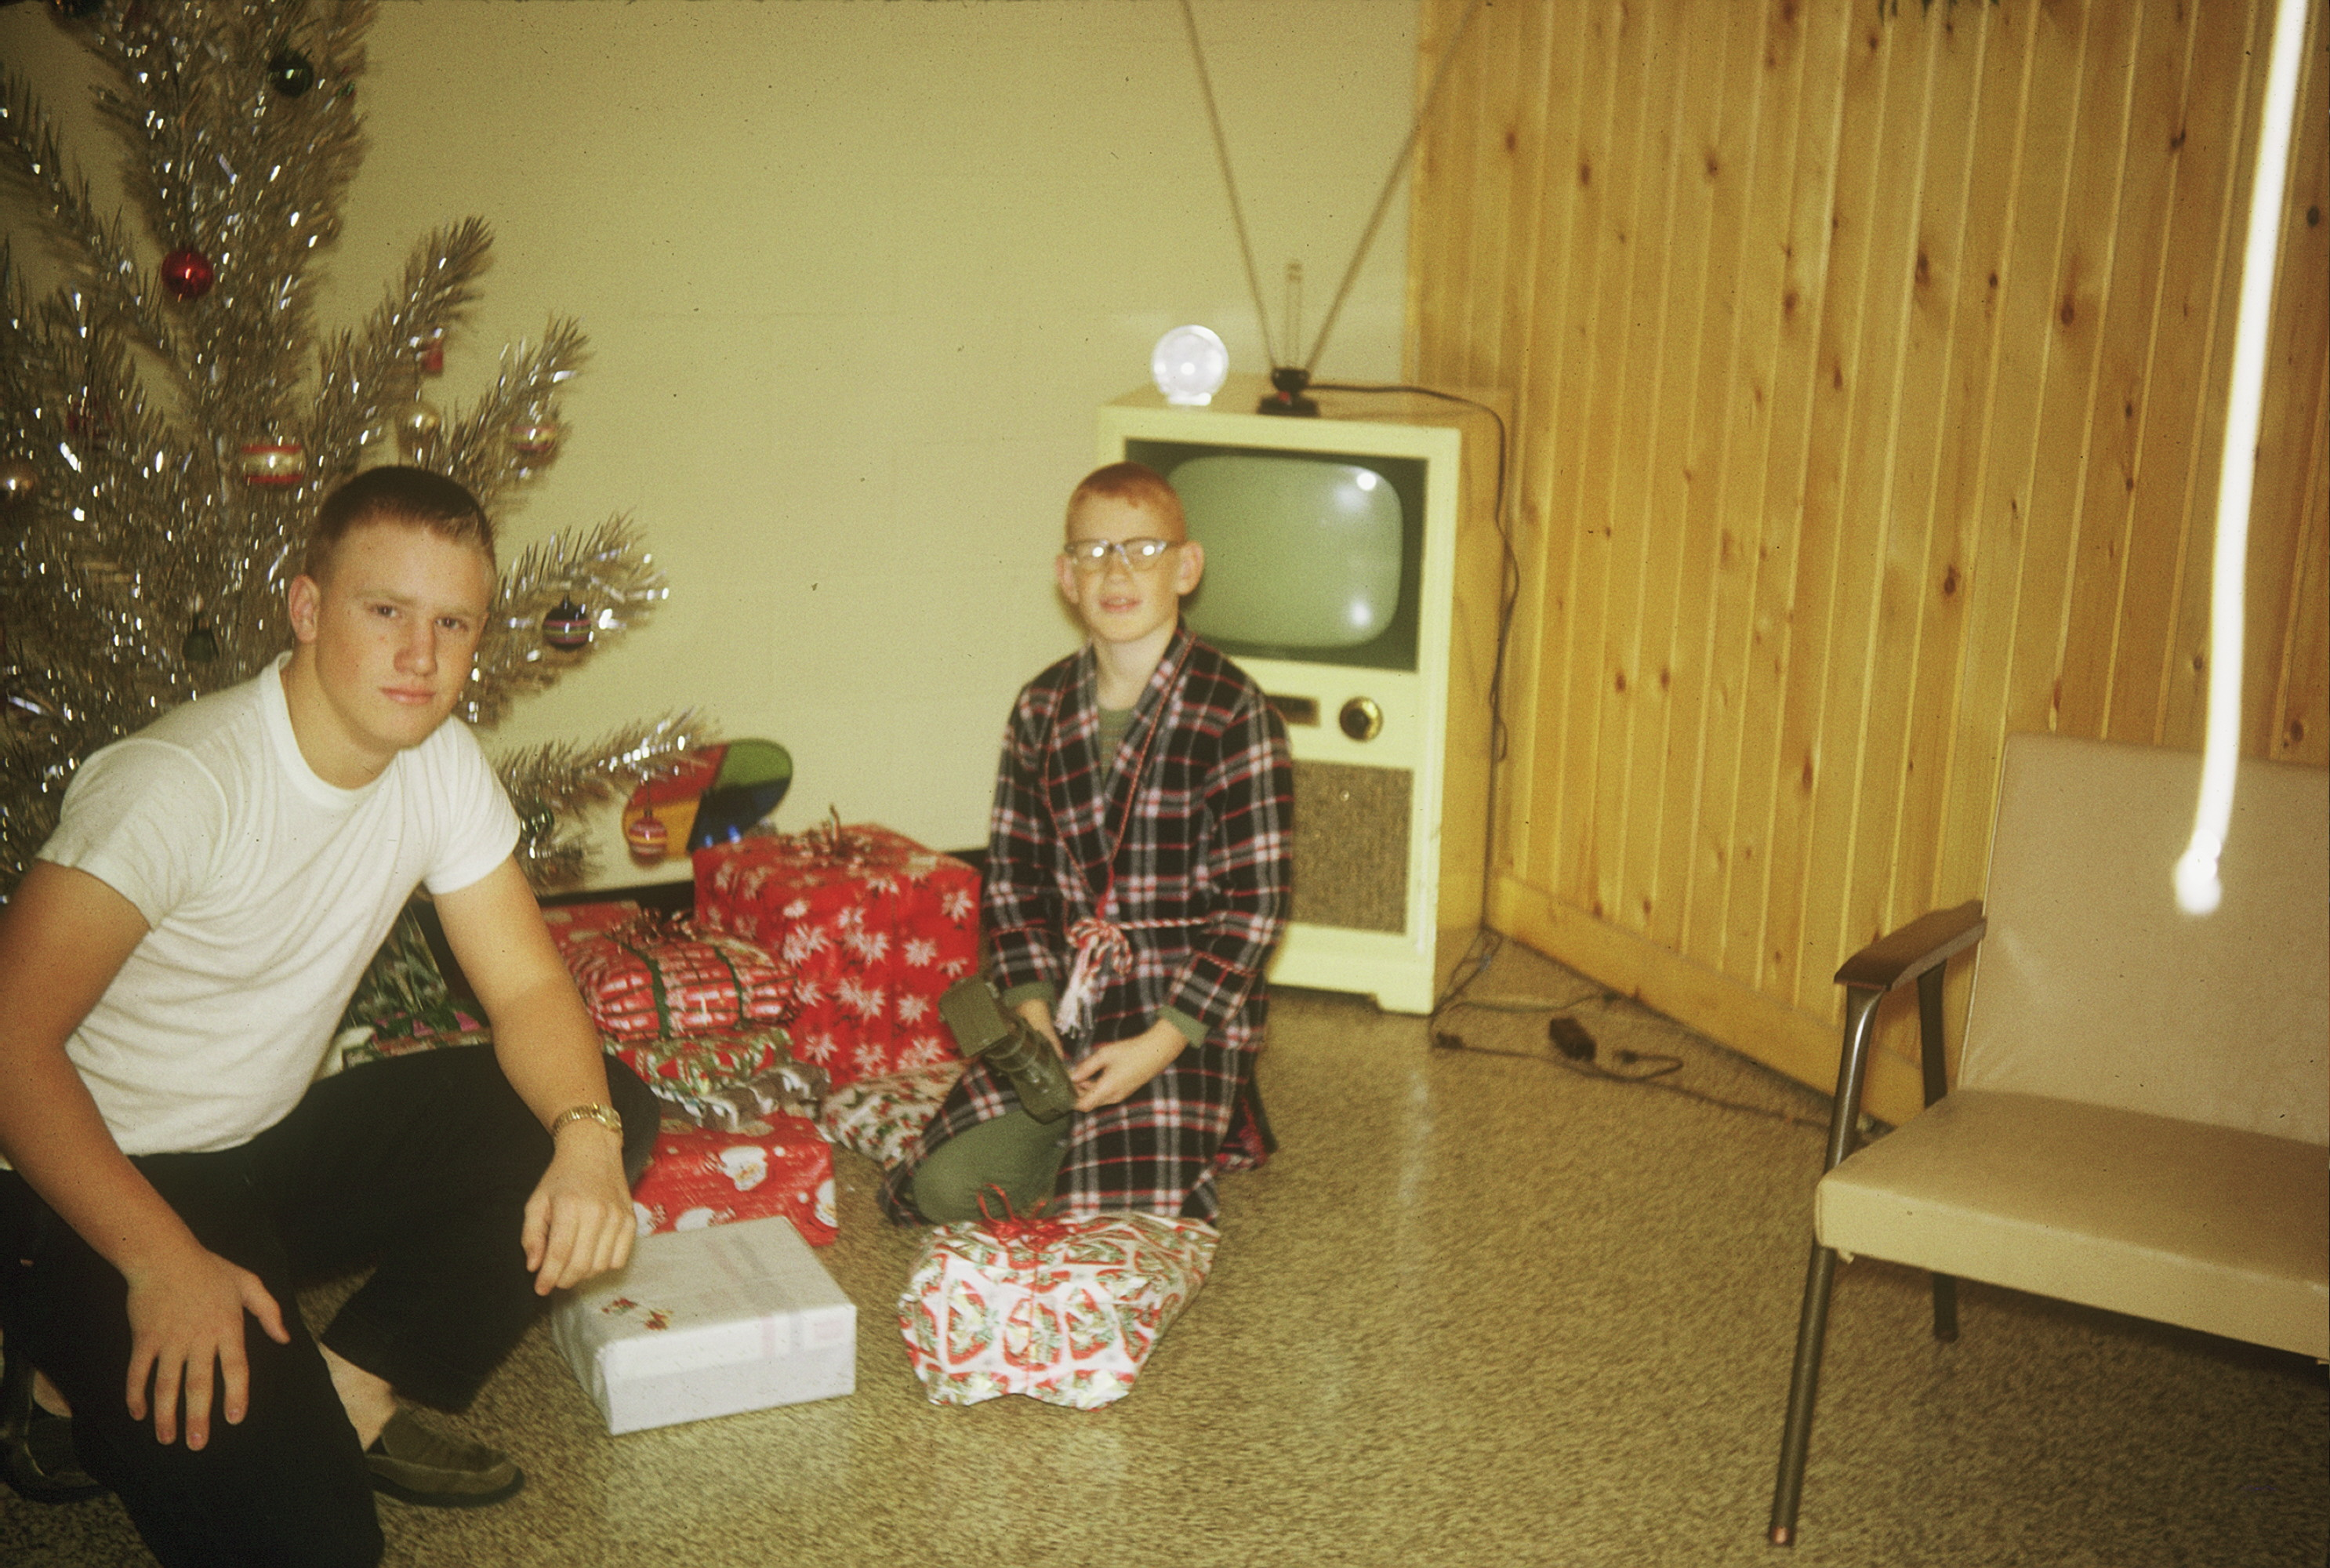 With my brother, Bruce, at Christmas 1963. We're in the basement because our dad so loved Christmas he often put up two trees, one in the living room and one in the basement family room. He also took this picture. I must have trained him how to do it off center.